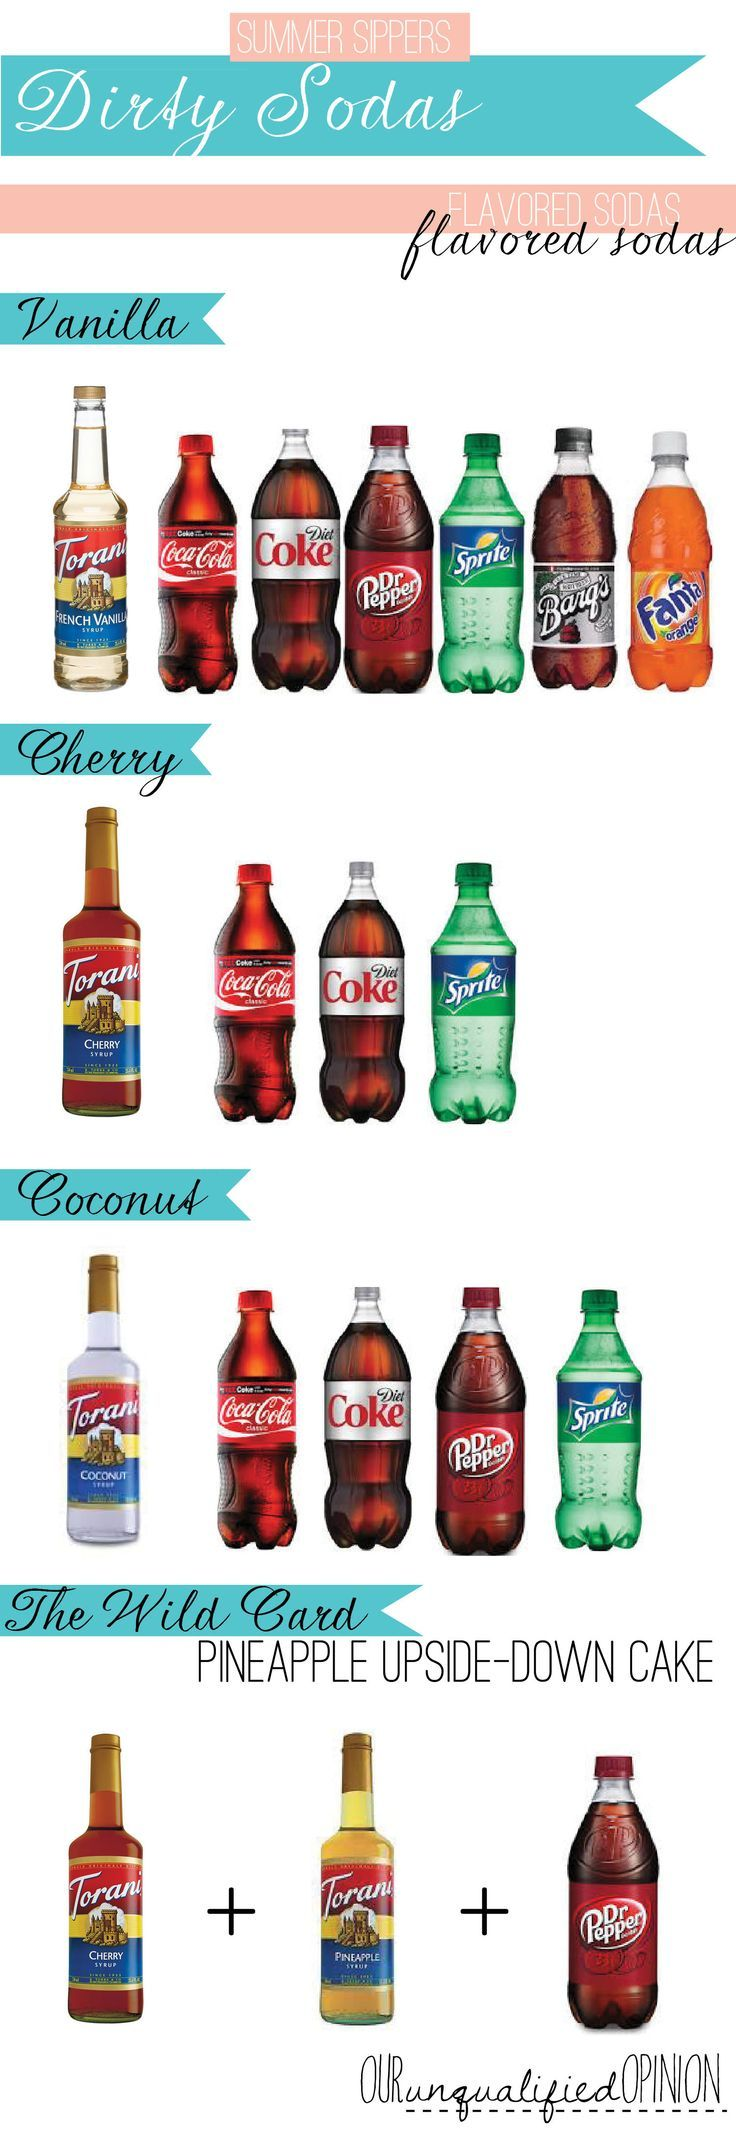 Dirty soda mixes--mix ups of syrups to try with your favorite sodas!  Taking it beyond just the 'dirty diet coke.'